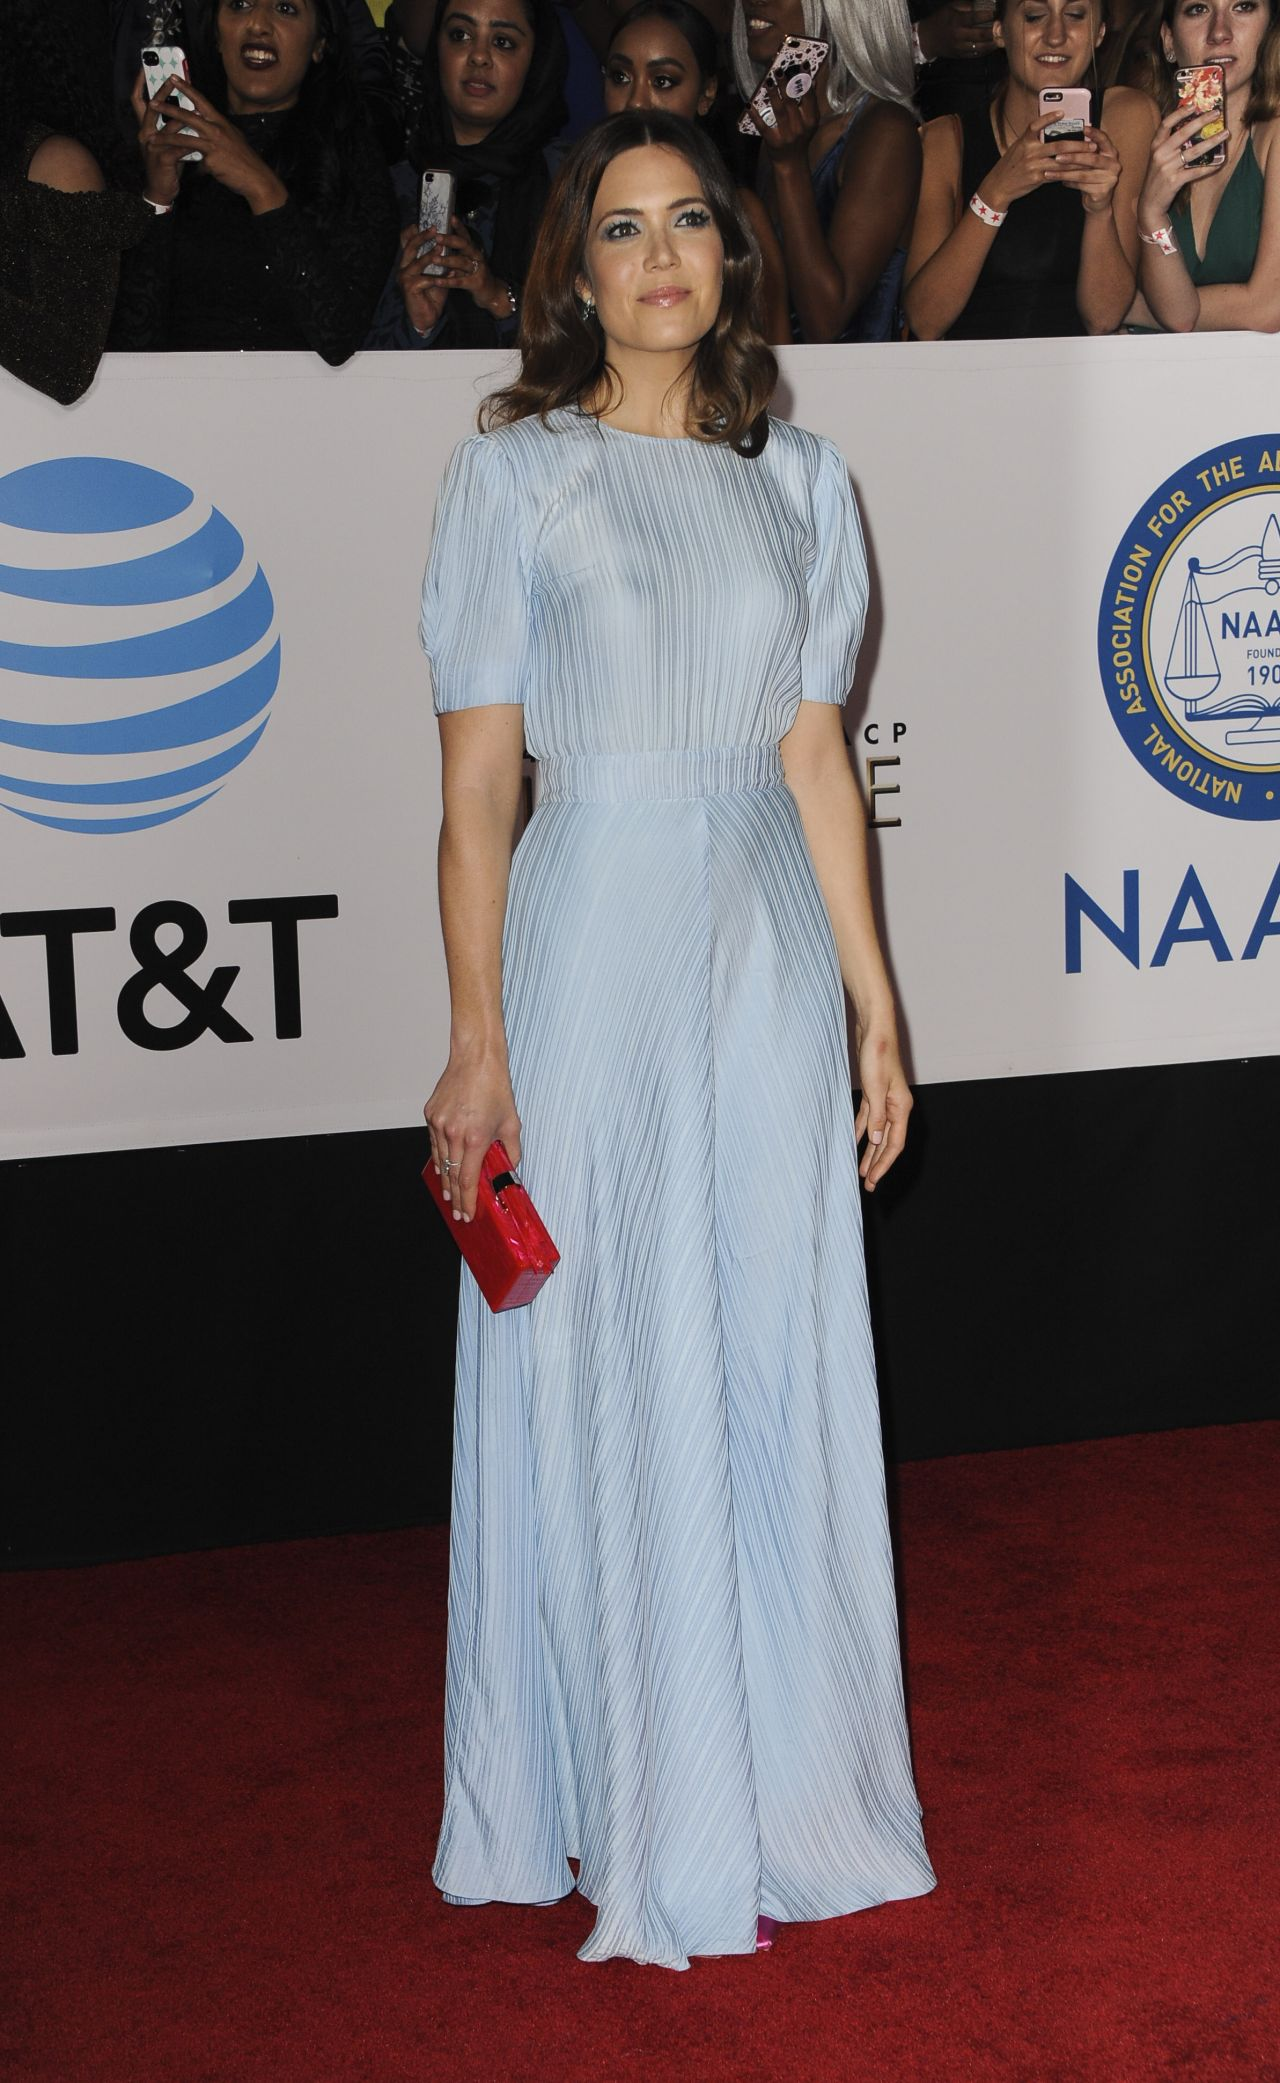 http://celebmafia.com/wp-content/uploads/2018/01/mandy-moore-2018-naacp-image-awards-in-pasadena-4.jpg